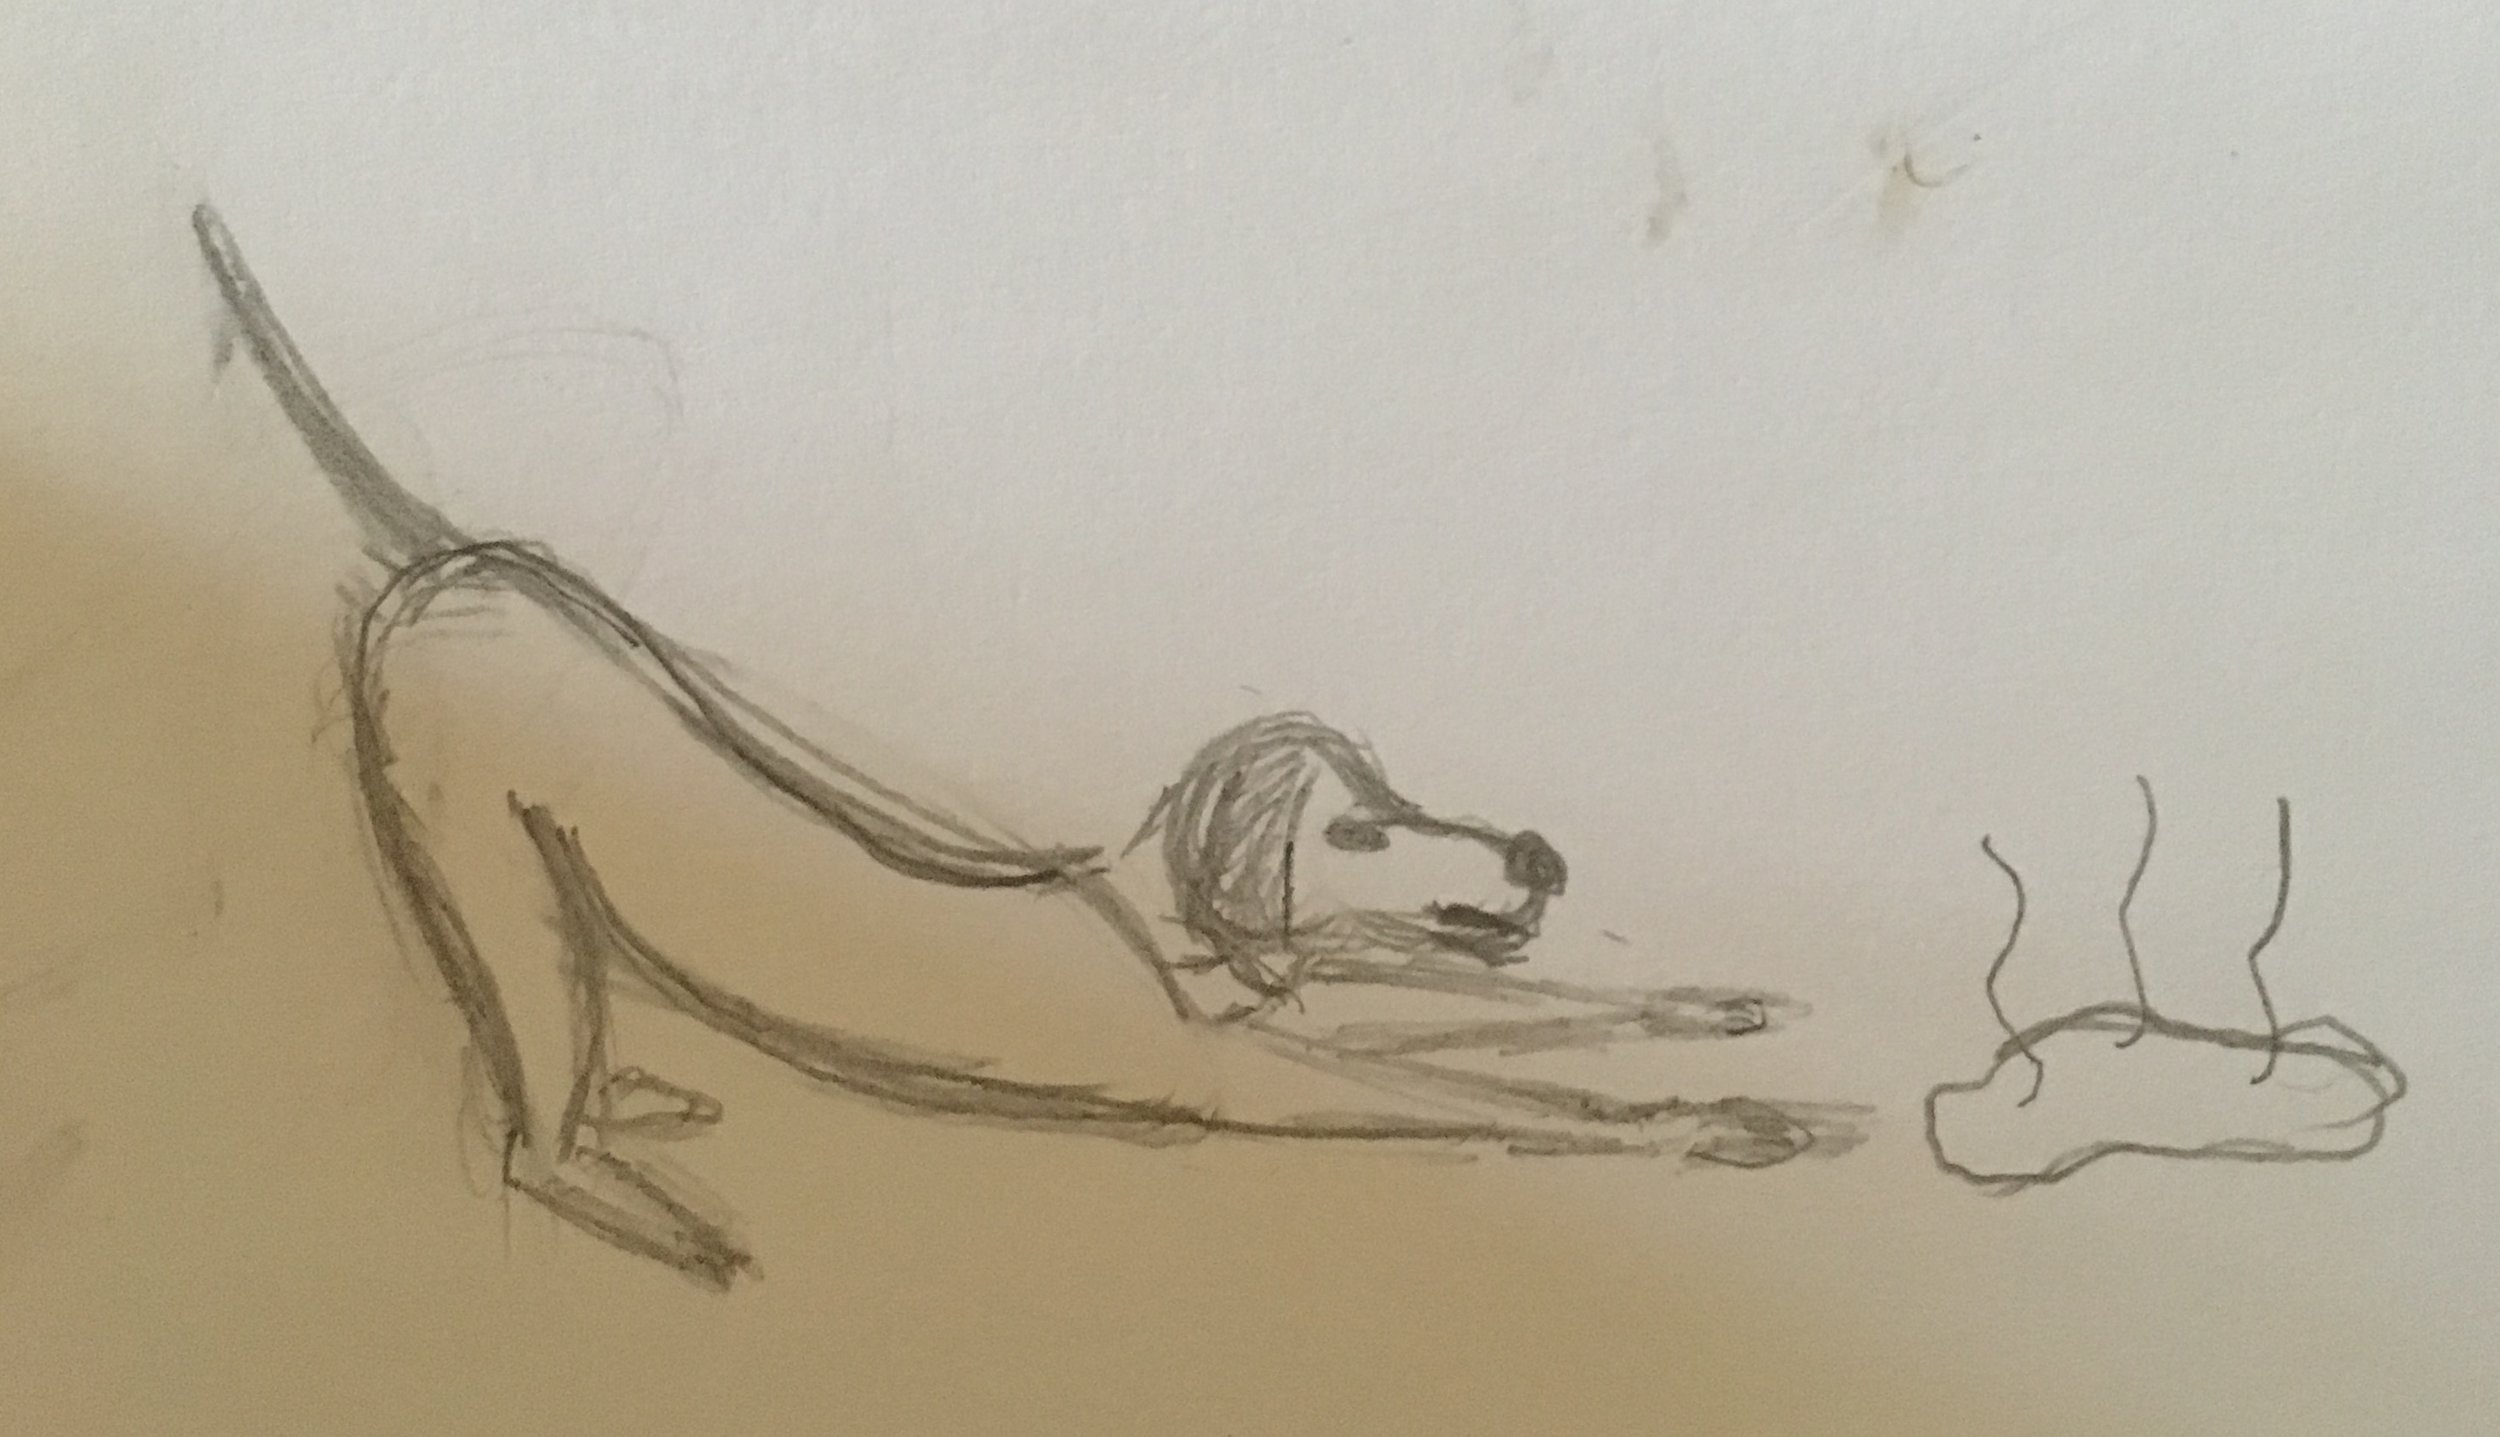 My attempt at drawing a dog puking. Yup that's a Doritos stain in the top right corner.